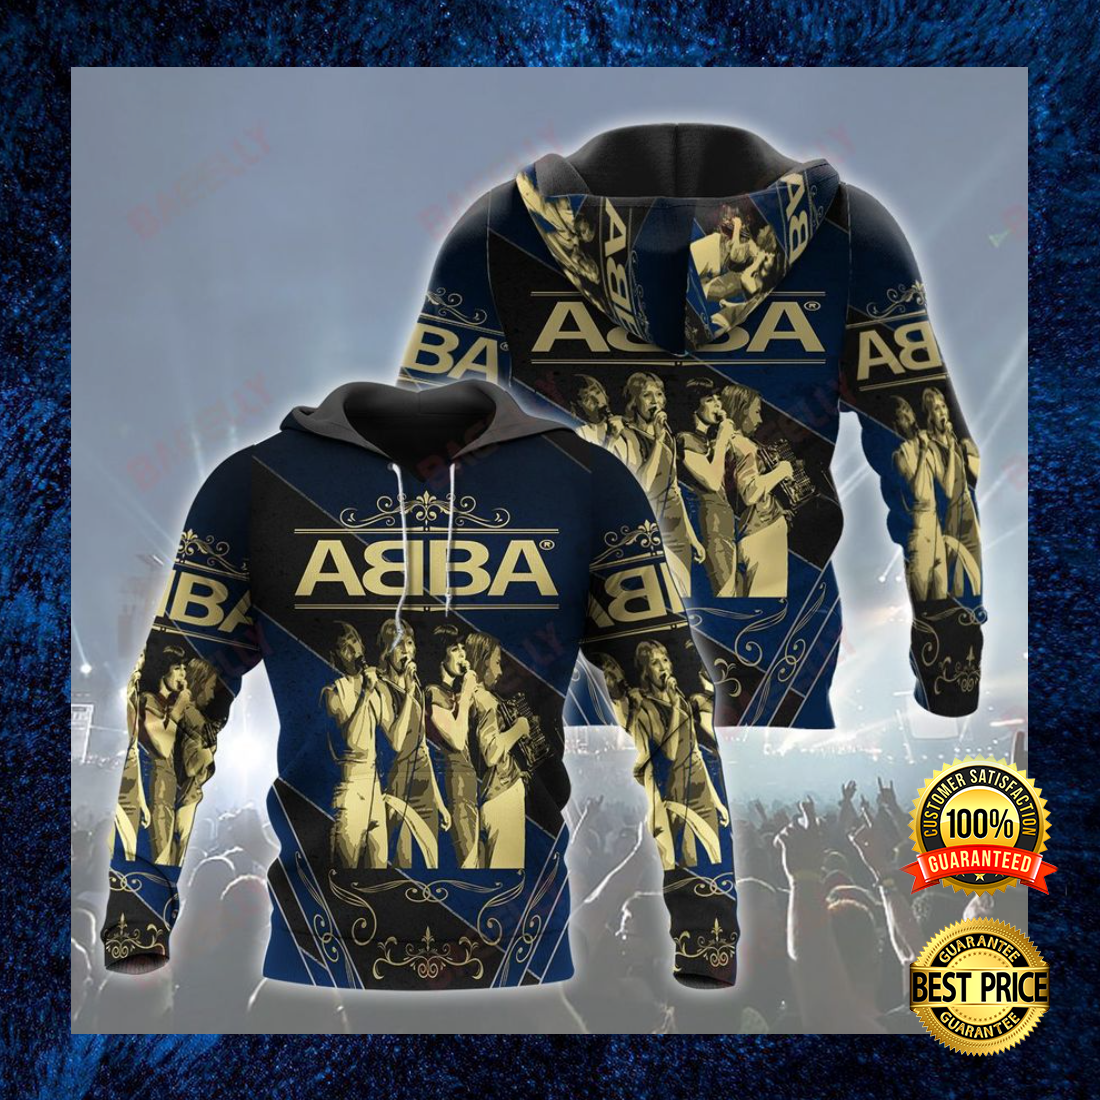 ABBA ALL OVER PRINT 3D HOODIE 4